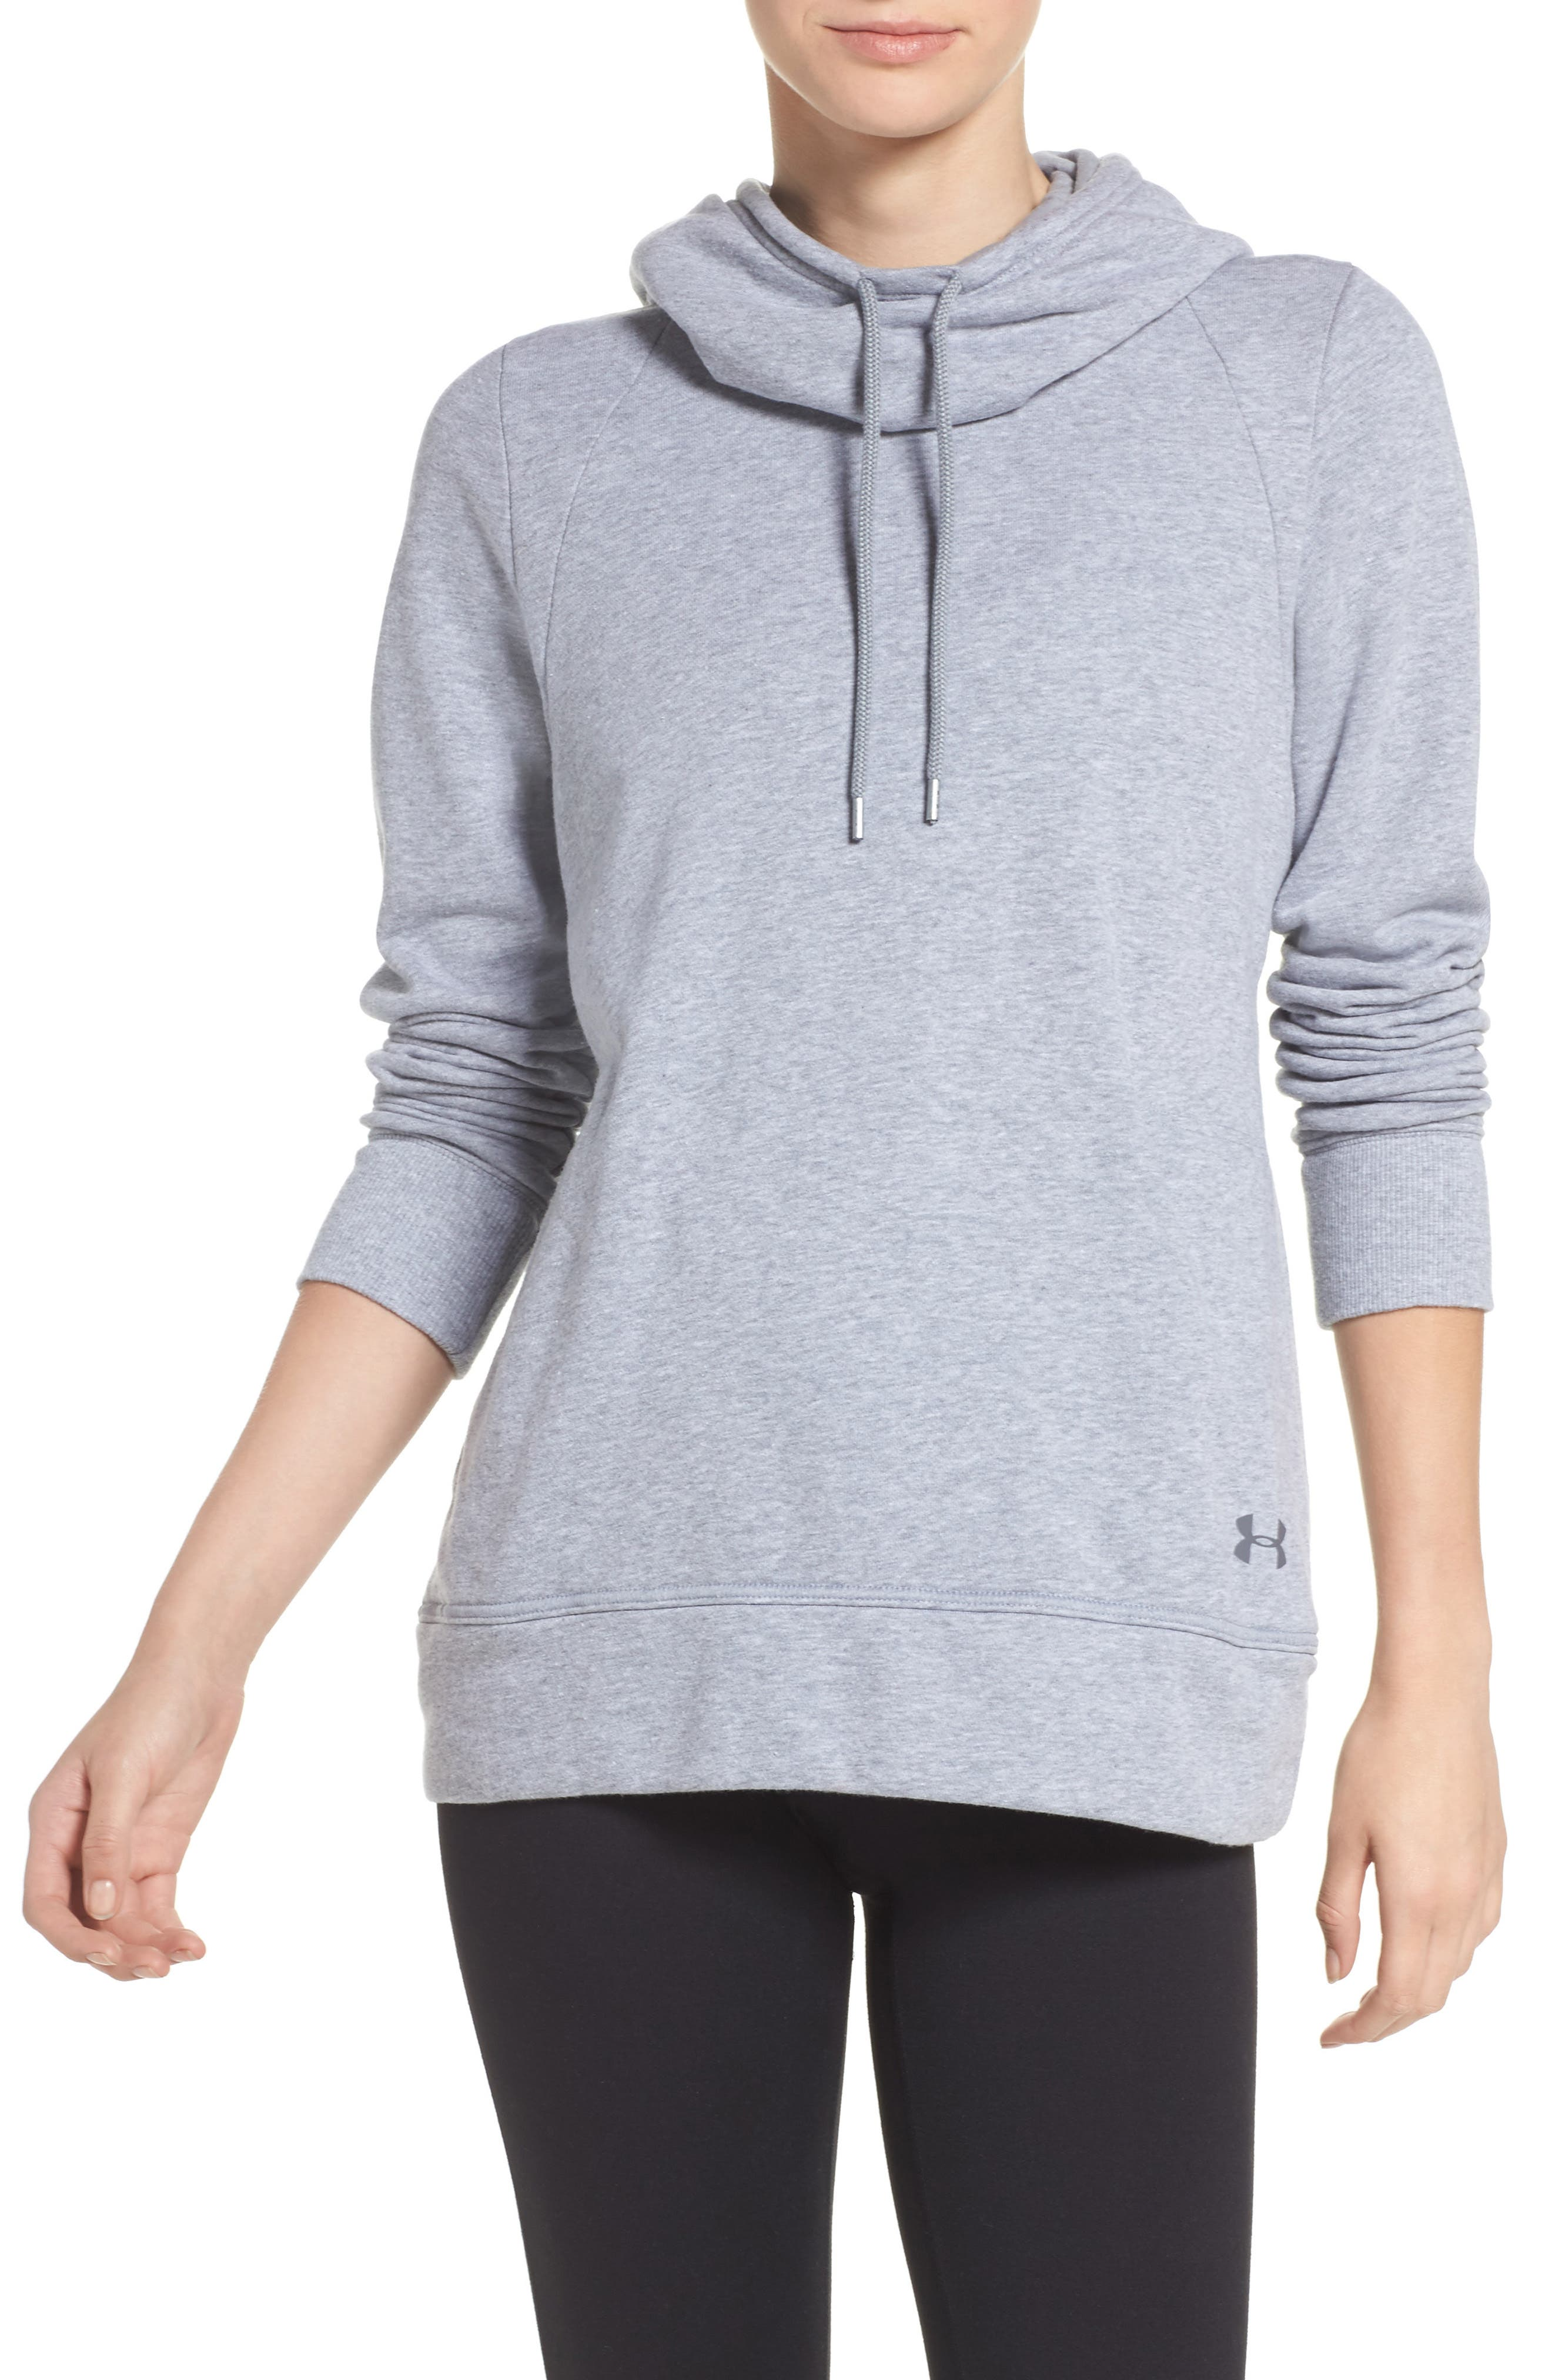 Under Armour Cutout Back Hoodie